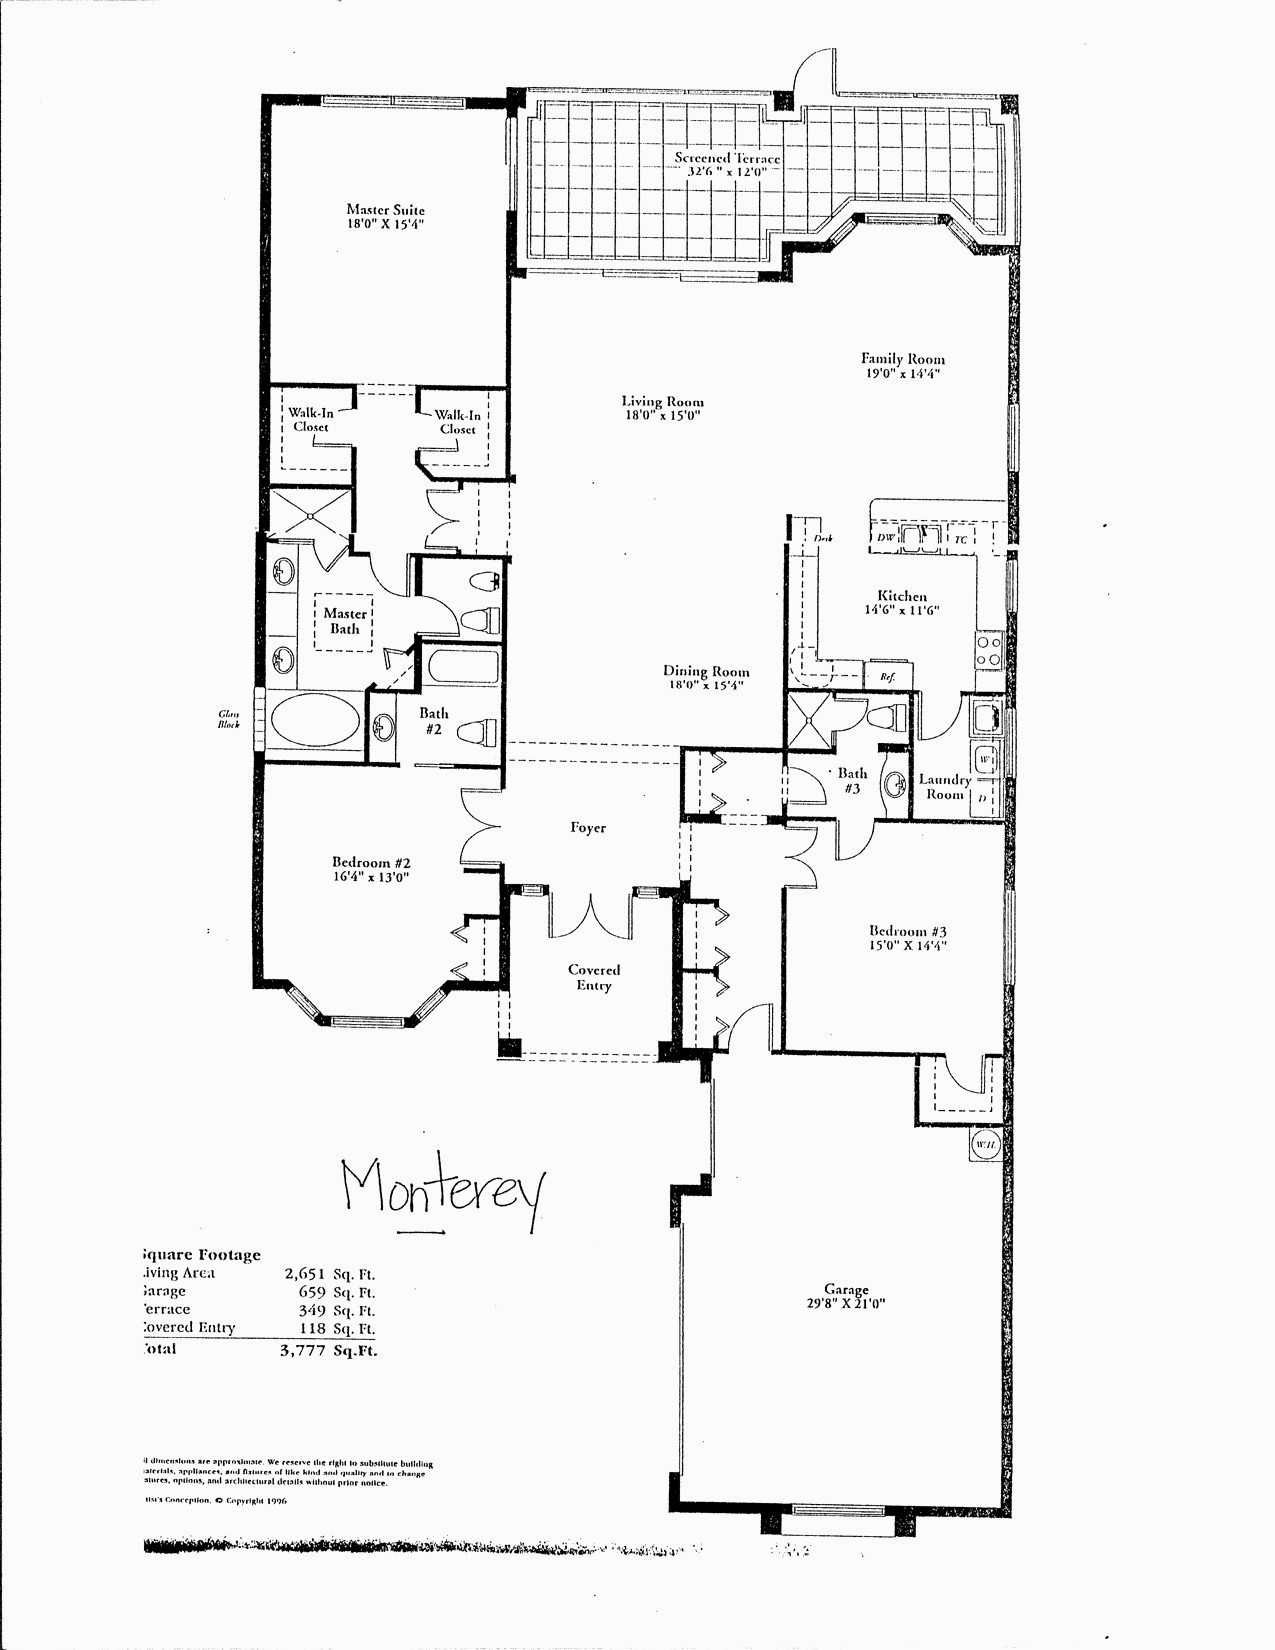 Irish cottage kitchen beautiful ground floor plan for home best plans with pool caragh also decor ideas house rh in pinterest